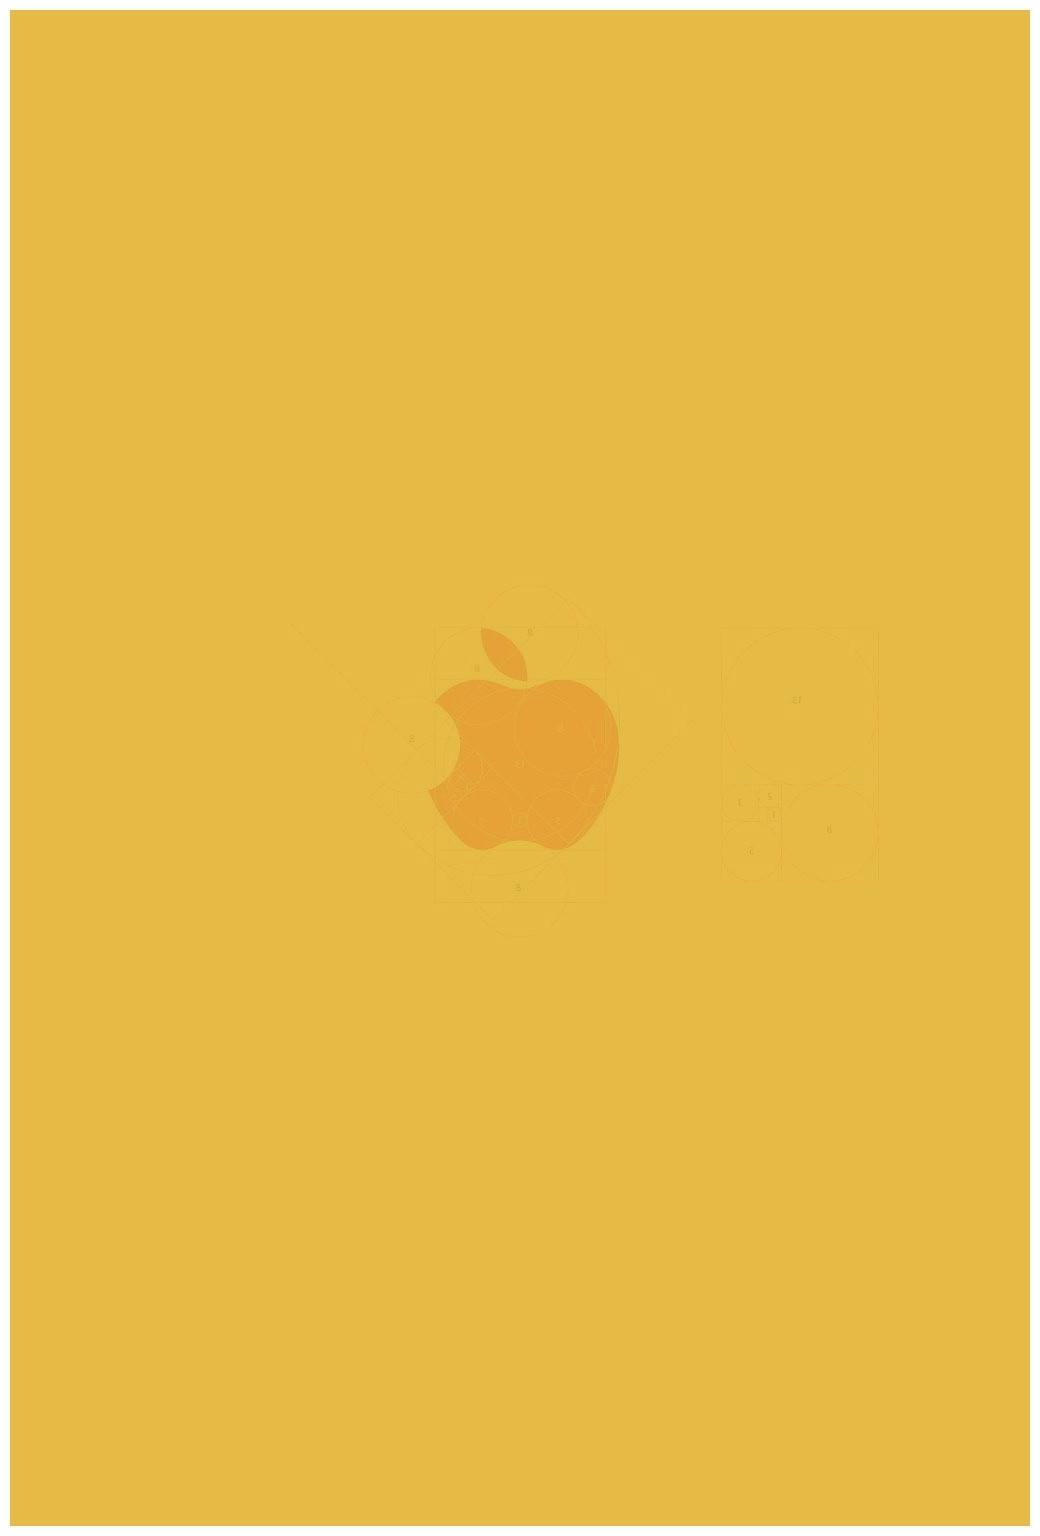 Yellow Aesthetic Iphone Wallpapers Wallpaper Cave